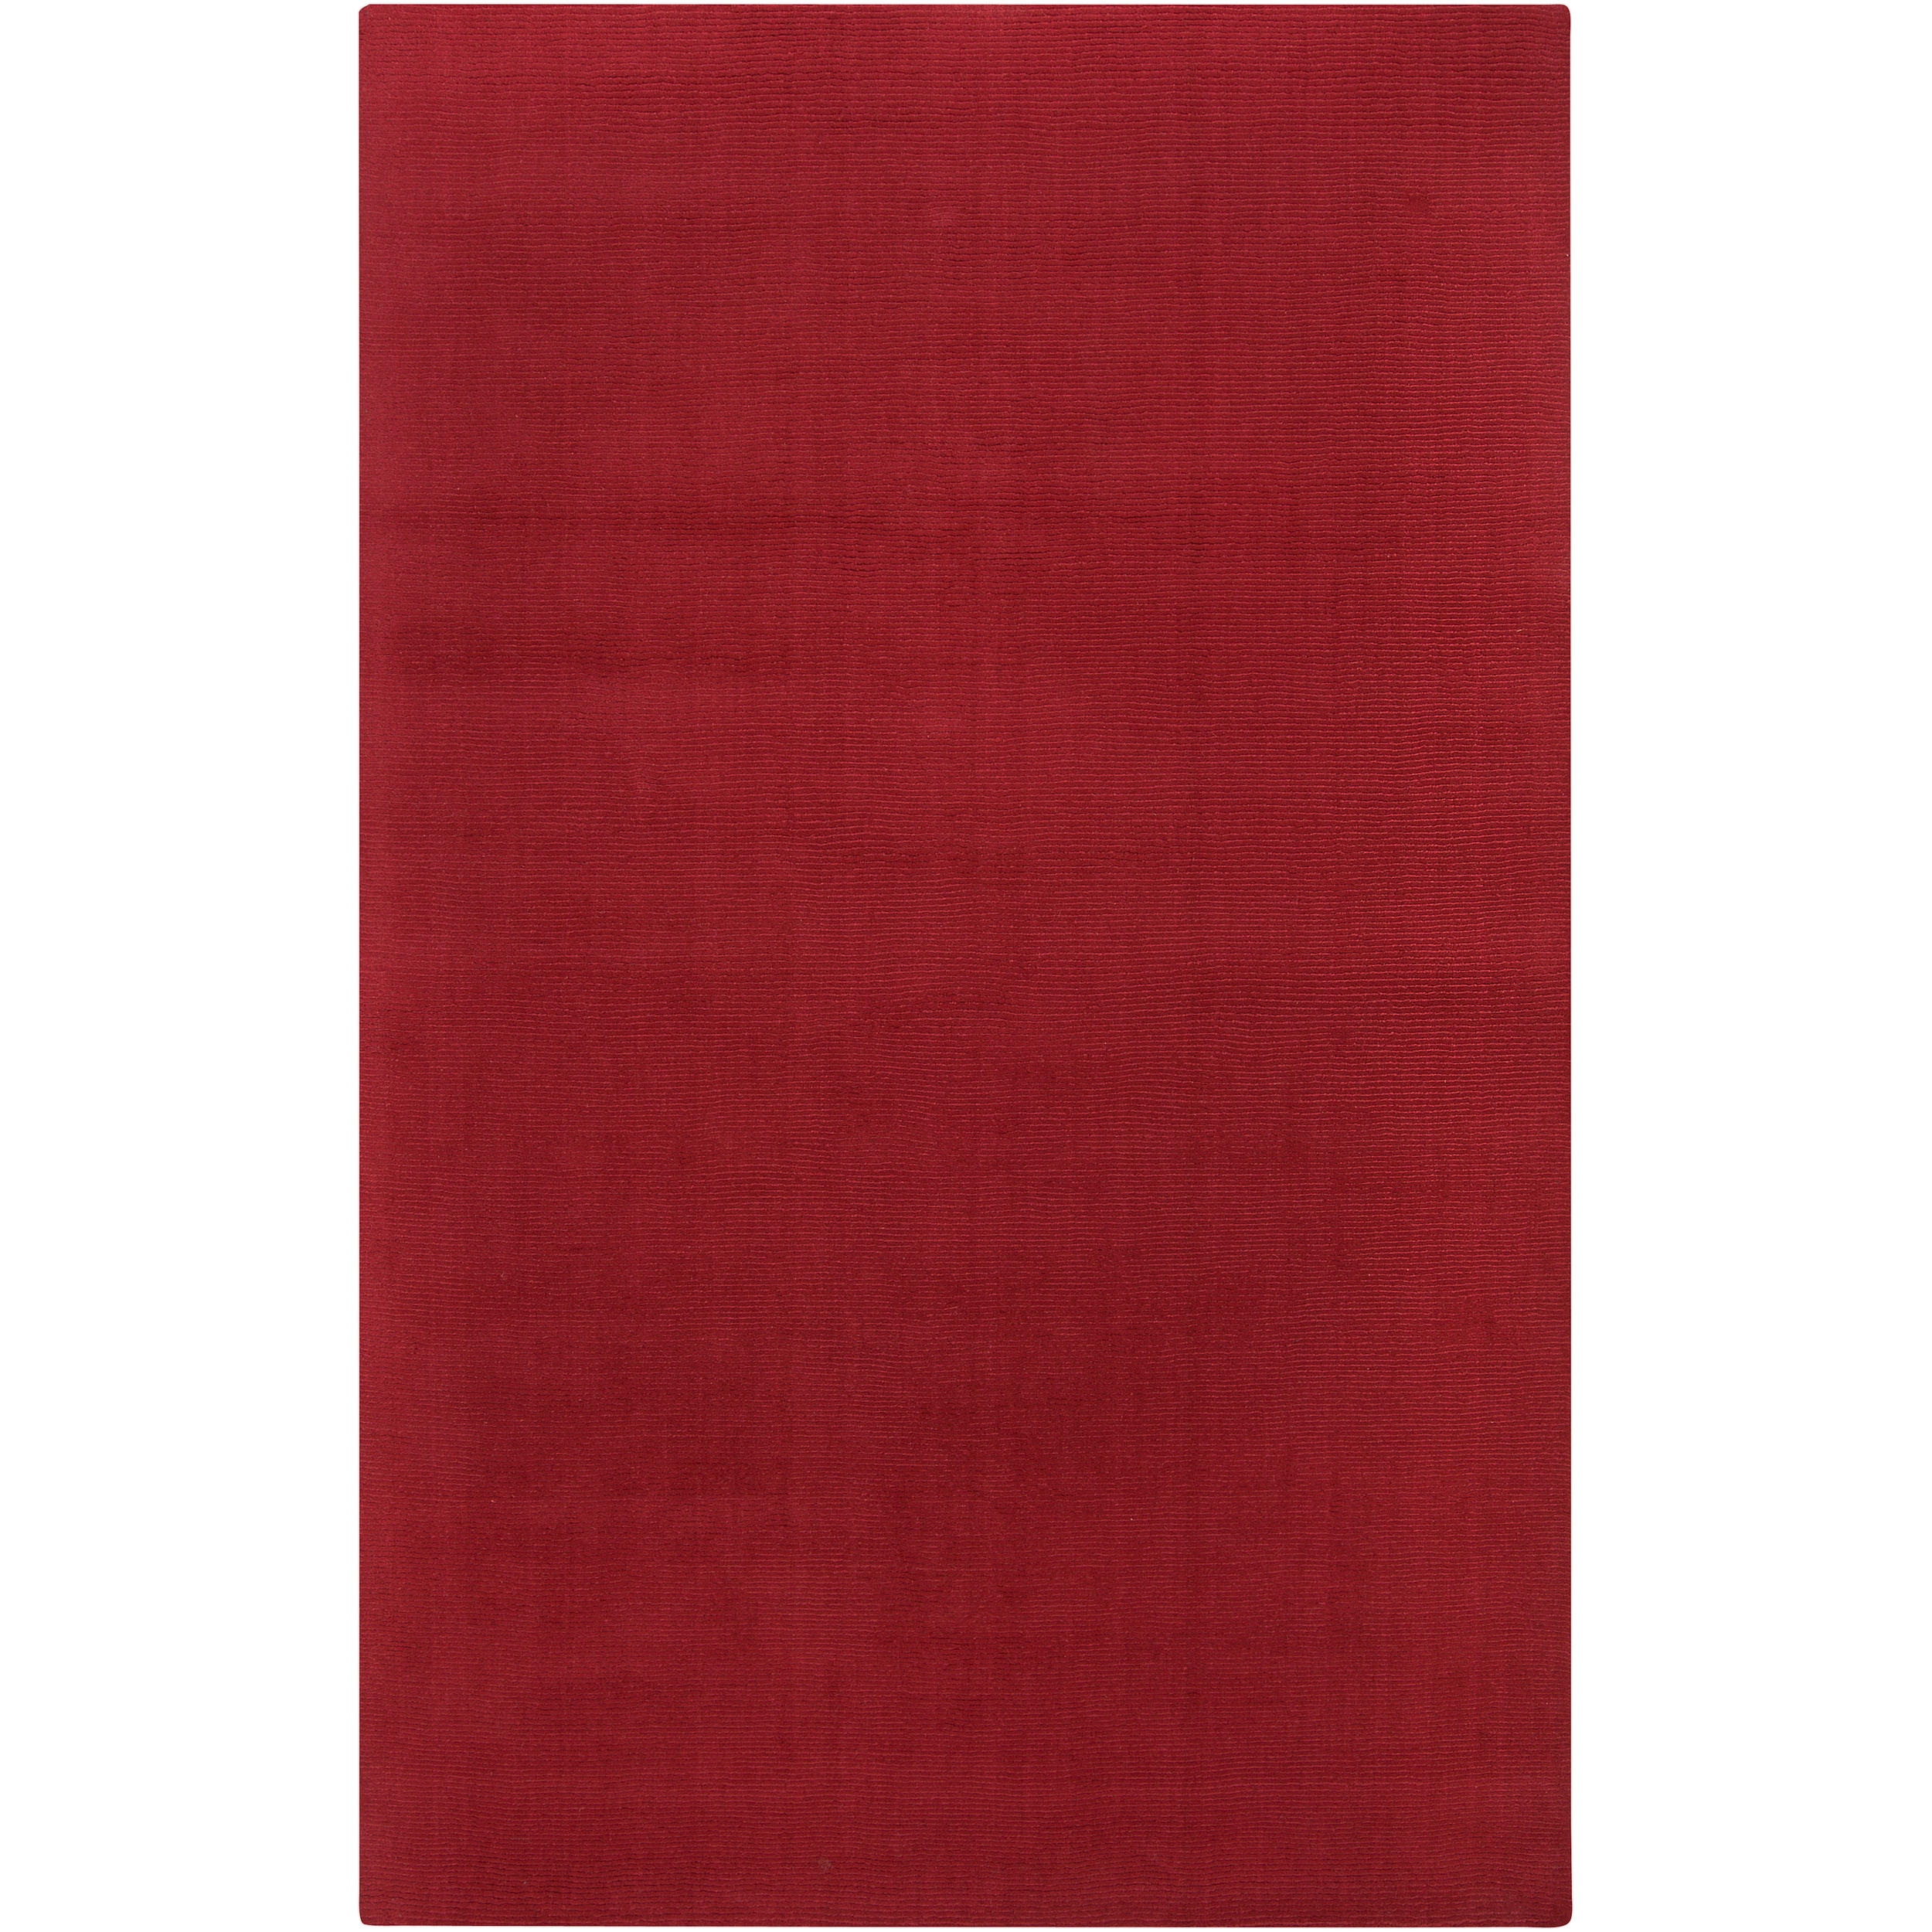 Hand-crafted Red Solid Casual Wool Osage Area Rug (8' x 11')